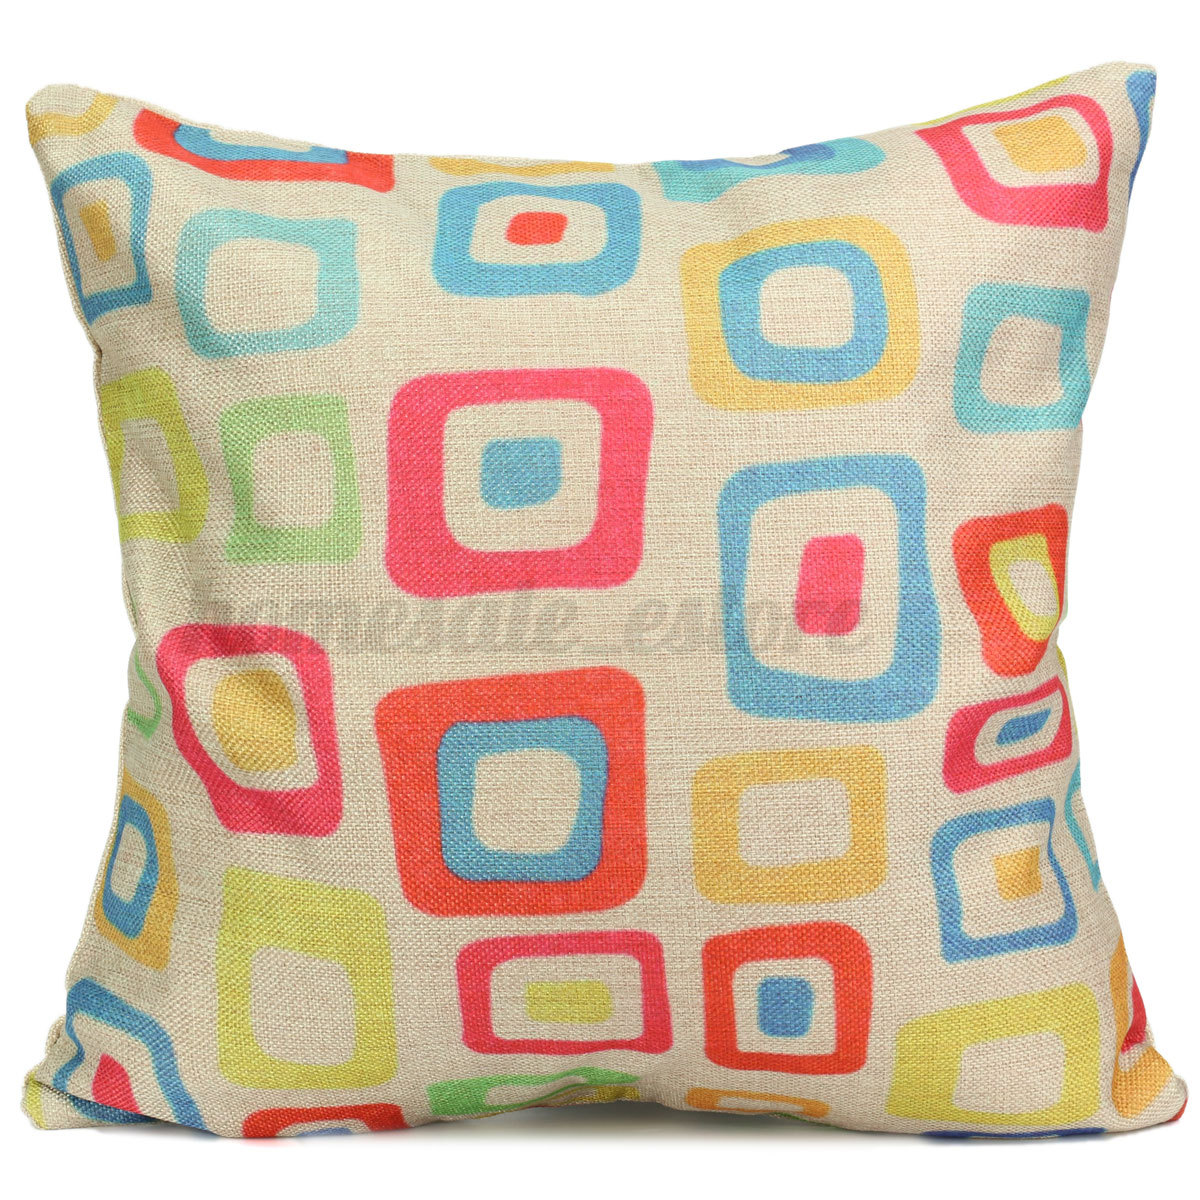 Decorative Cushions For Bedrooms : Vintage Simple Style Home Bedroom Decor Seat Back Pillow Case Cushion Cover